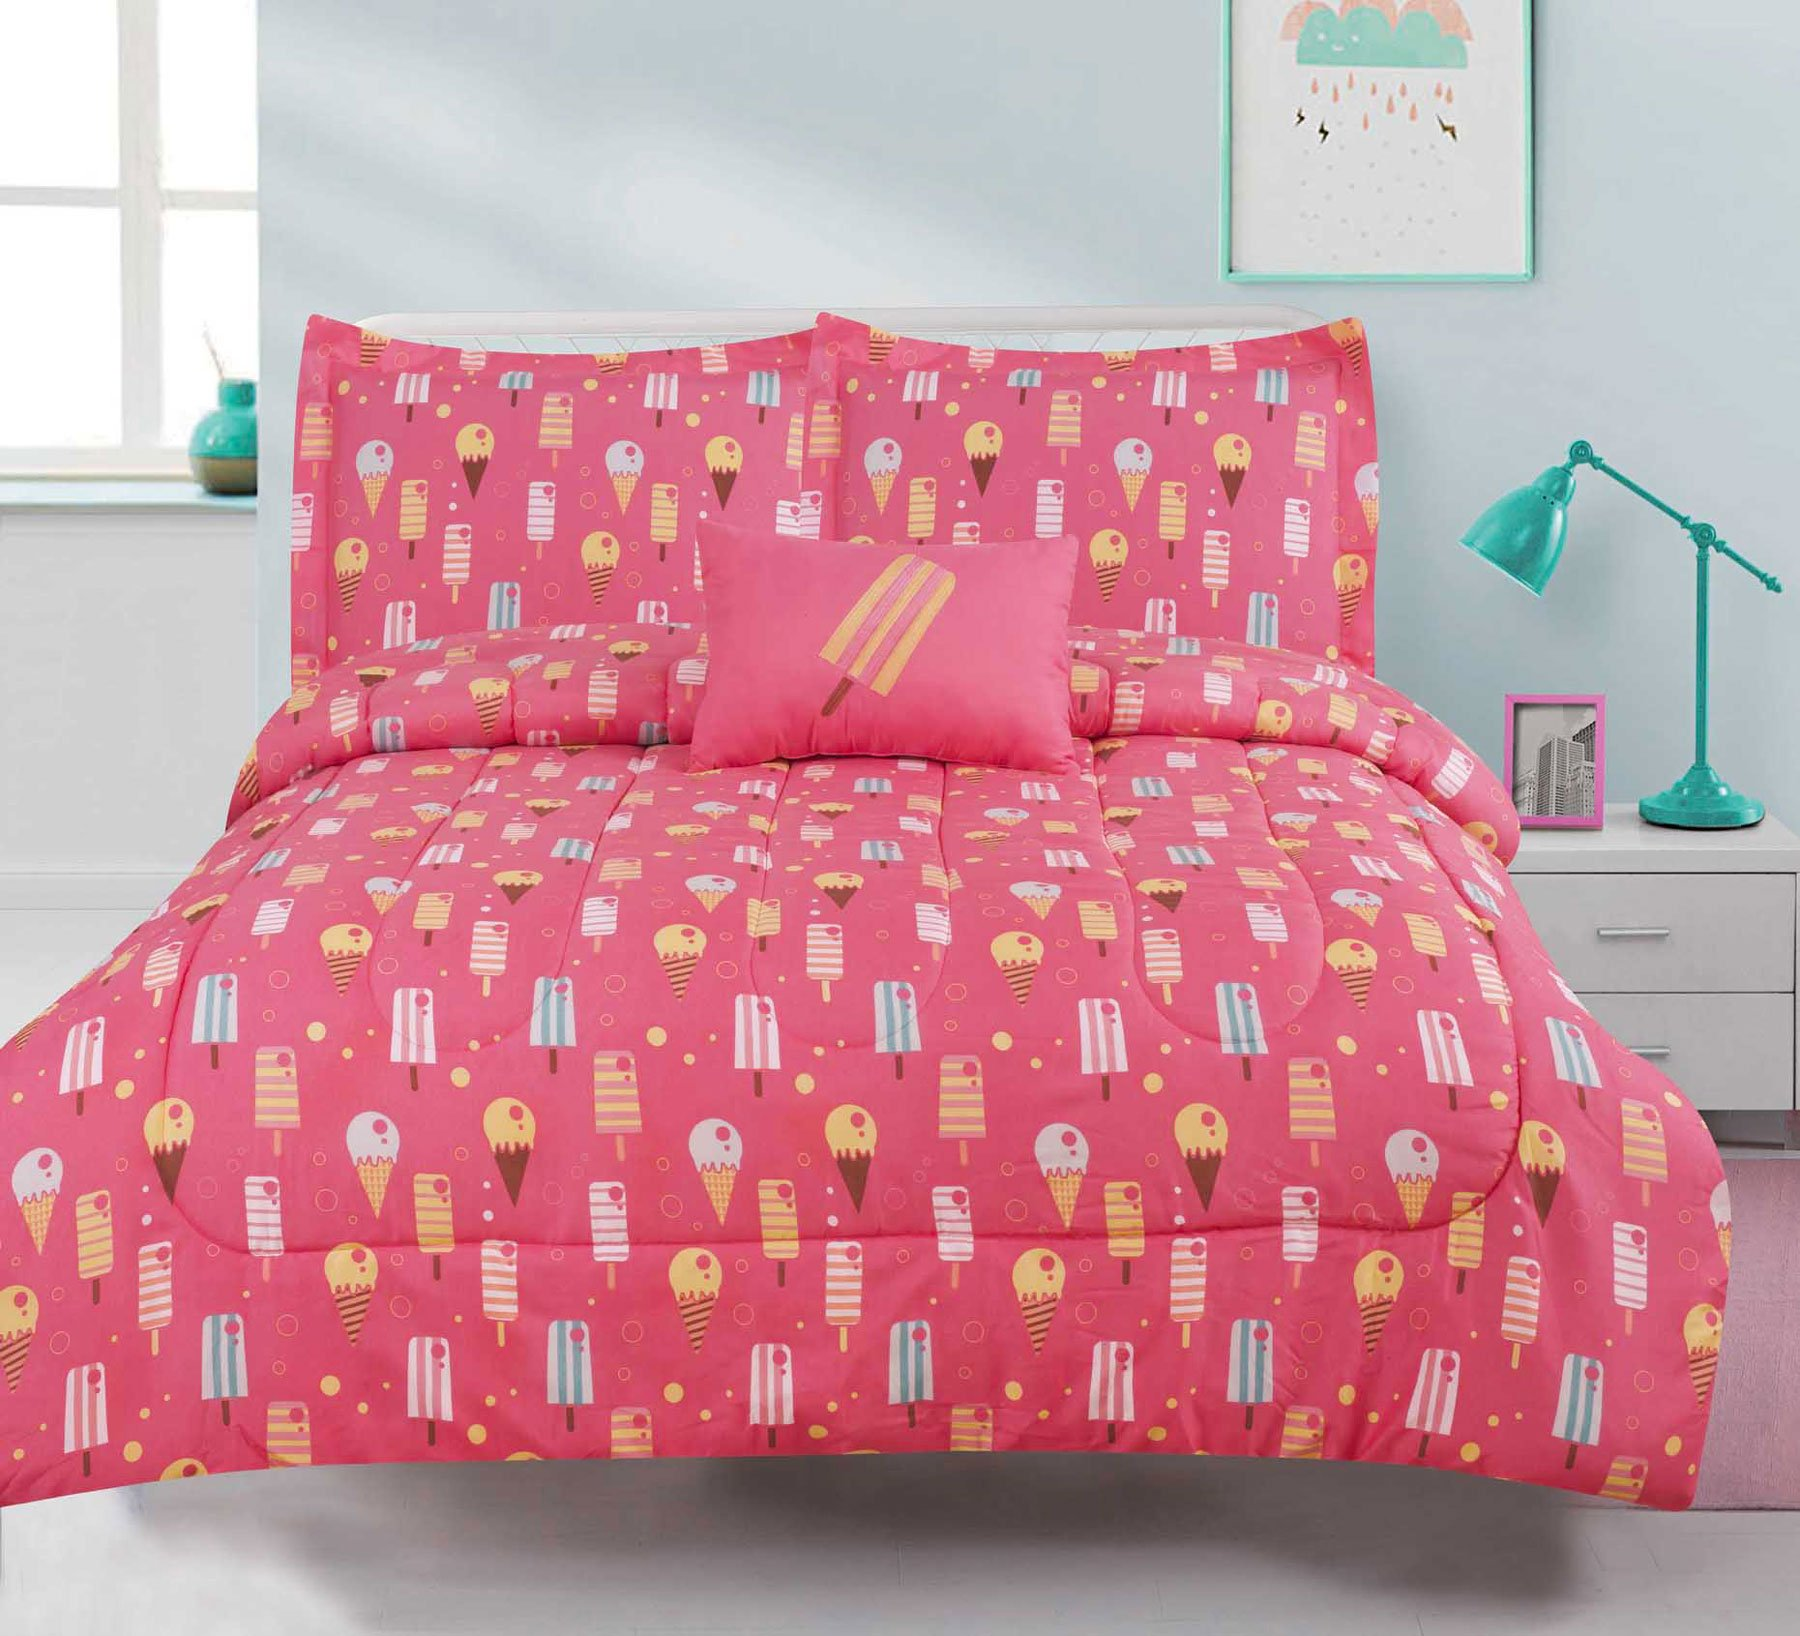 Get Quotations Queen S Bedding Ice Cream Cone Comforter 4 Piece Bed Set Pink Popsicle